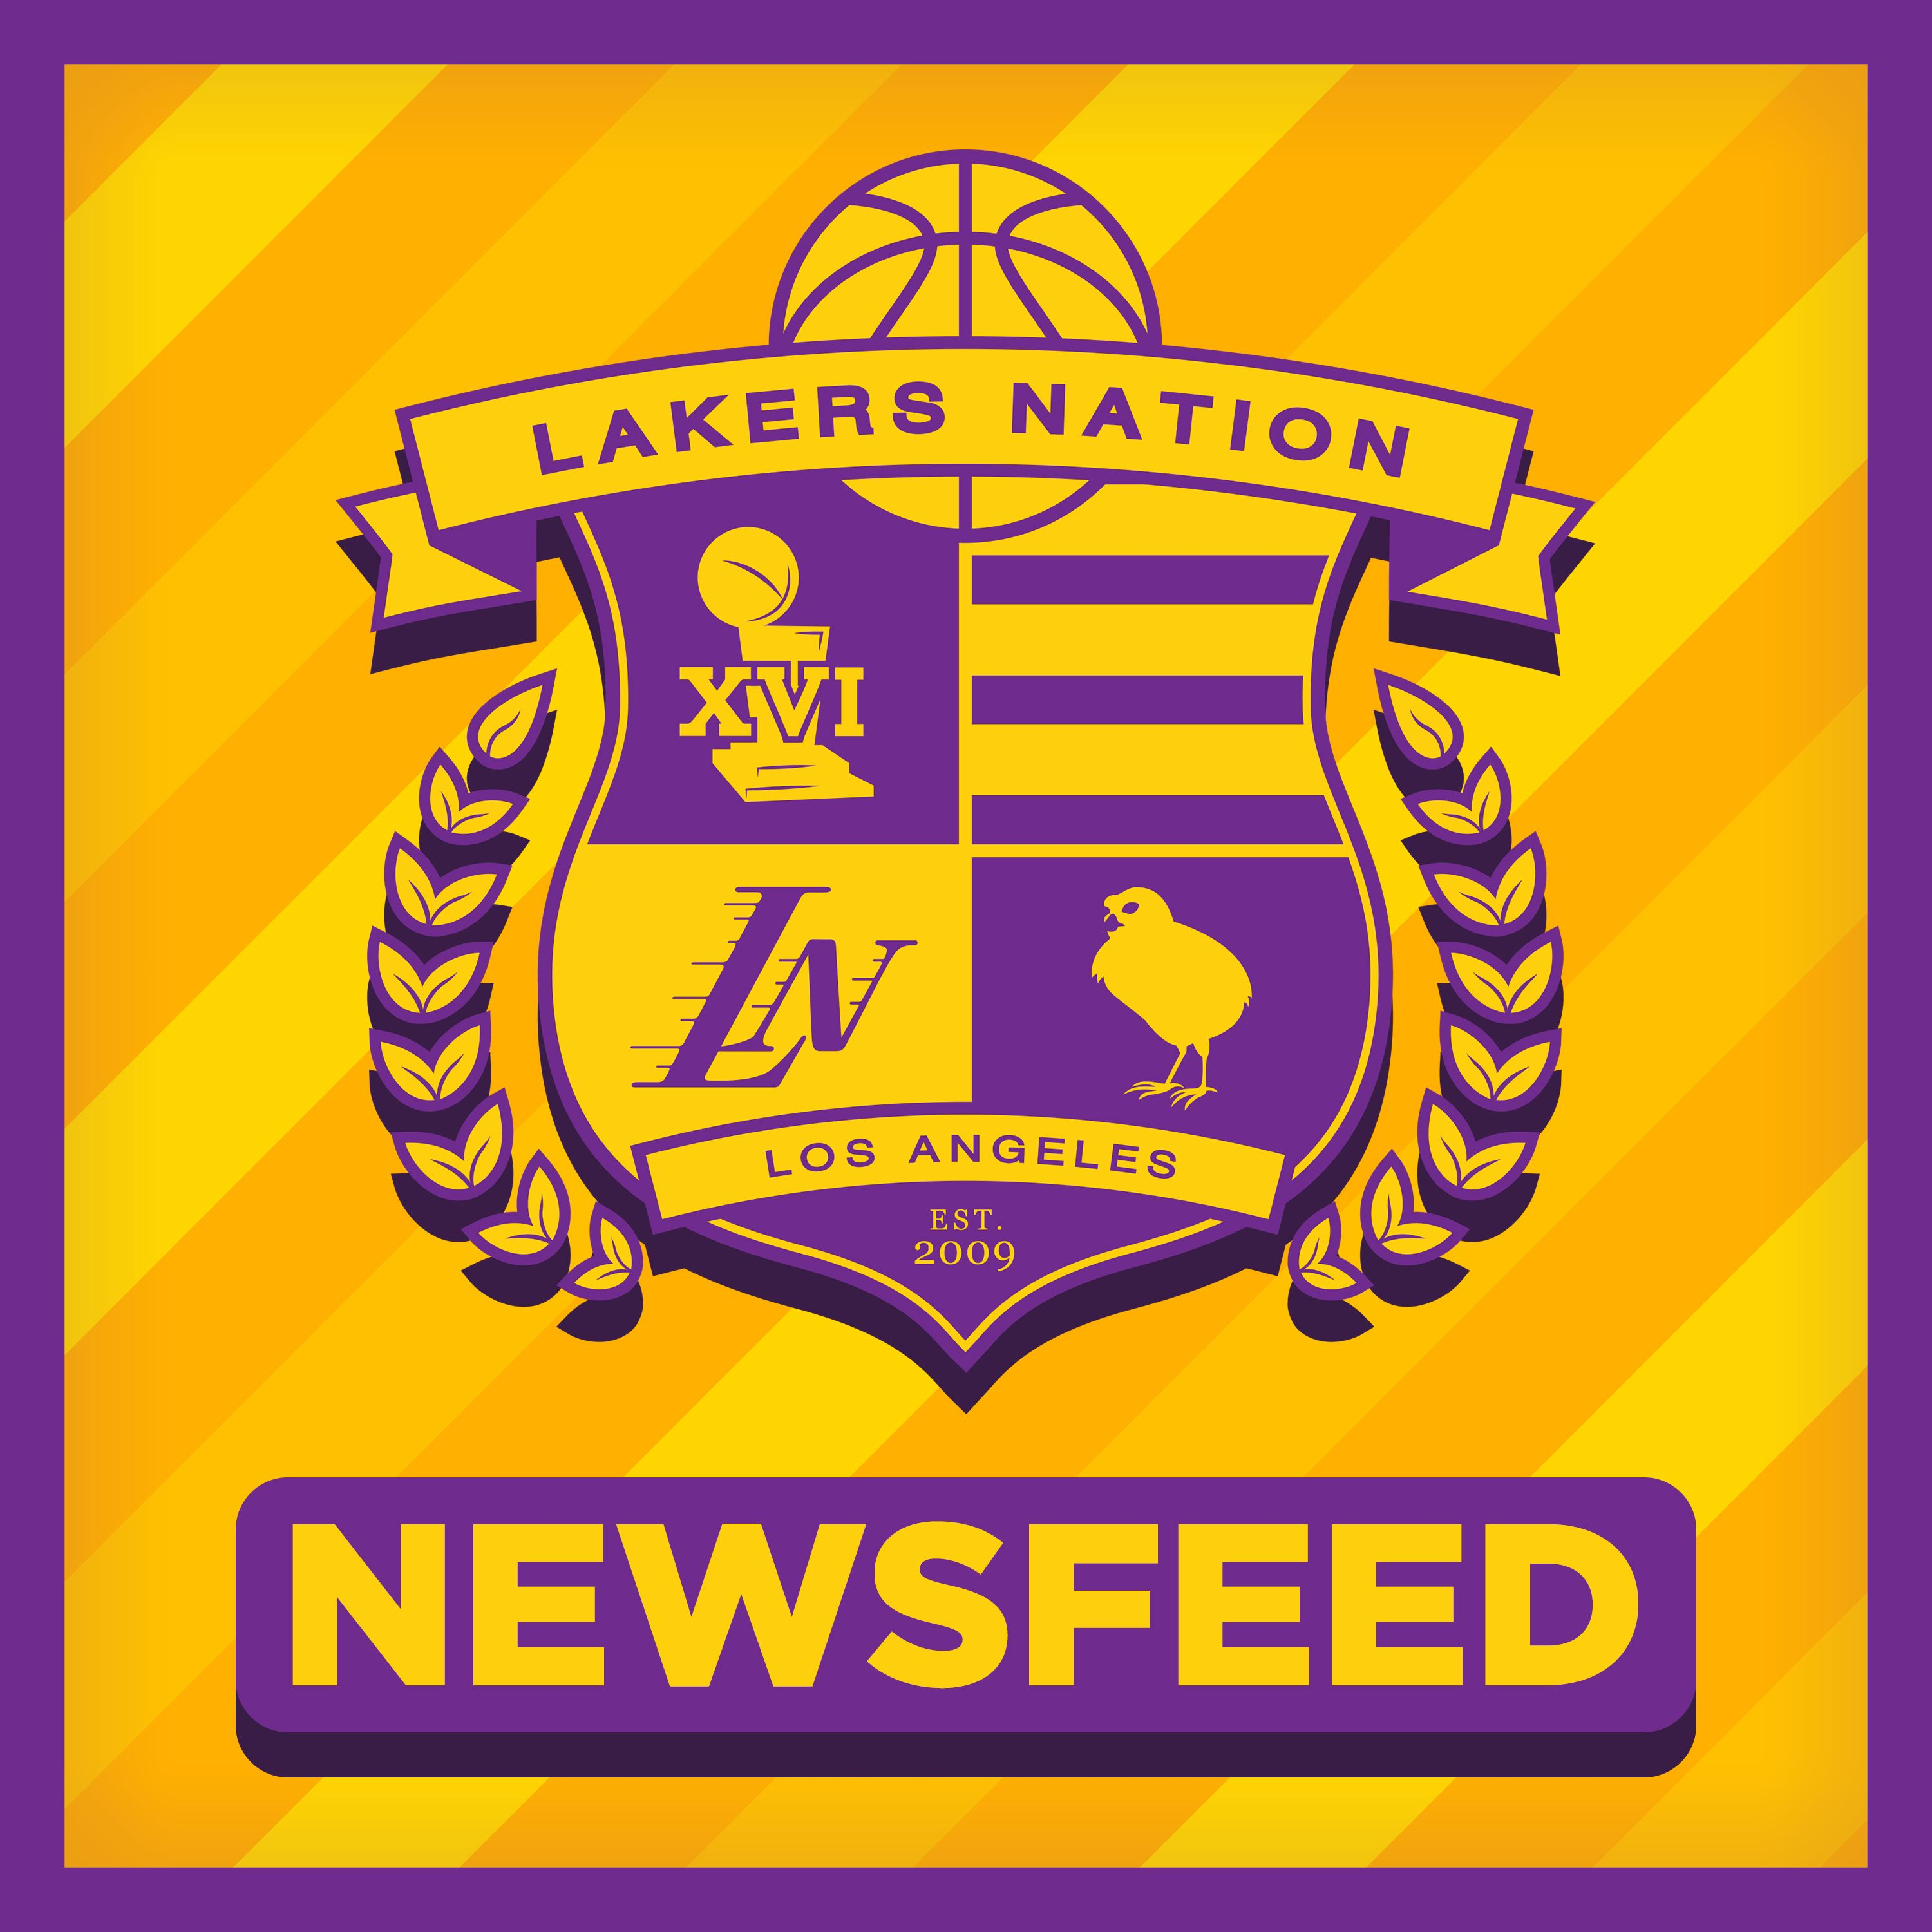 Lakers Nation News Feed: Breaking News Reports In Real ...Lakers News